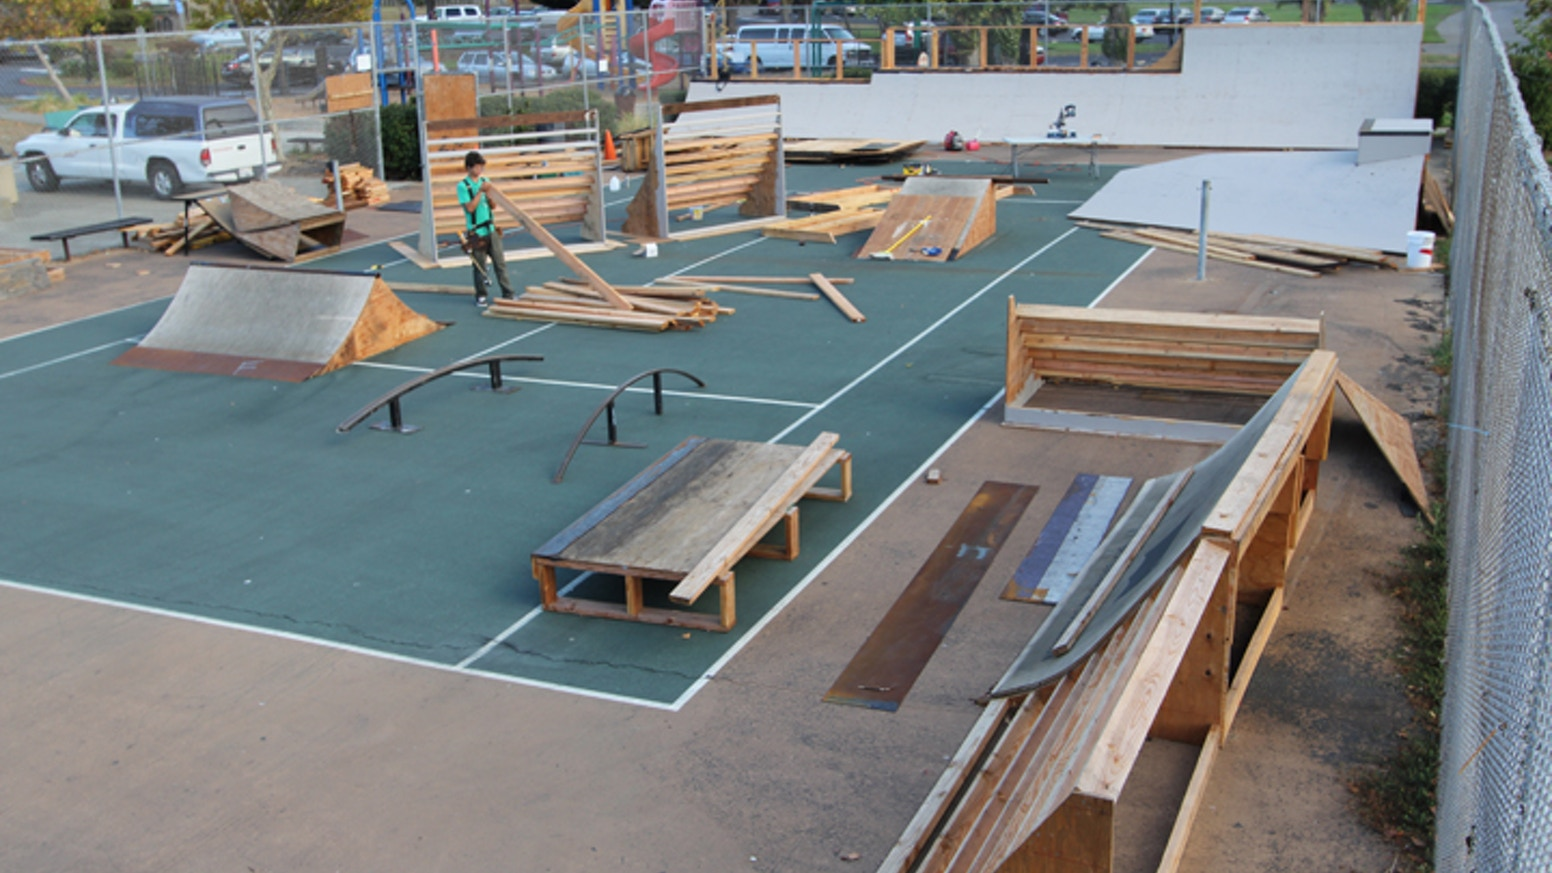 Keith Williams (Hood Gamez) brought in Proof Lab to help raise funds to build a community Art & Skate Park in the unused Marin City tennis courts